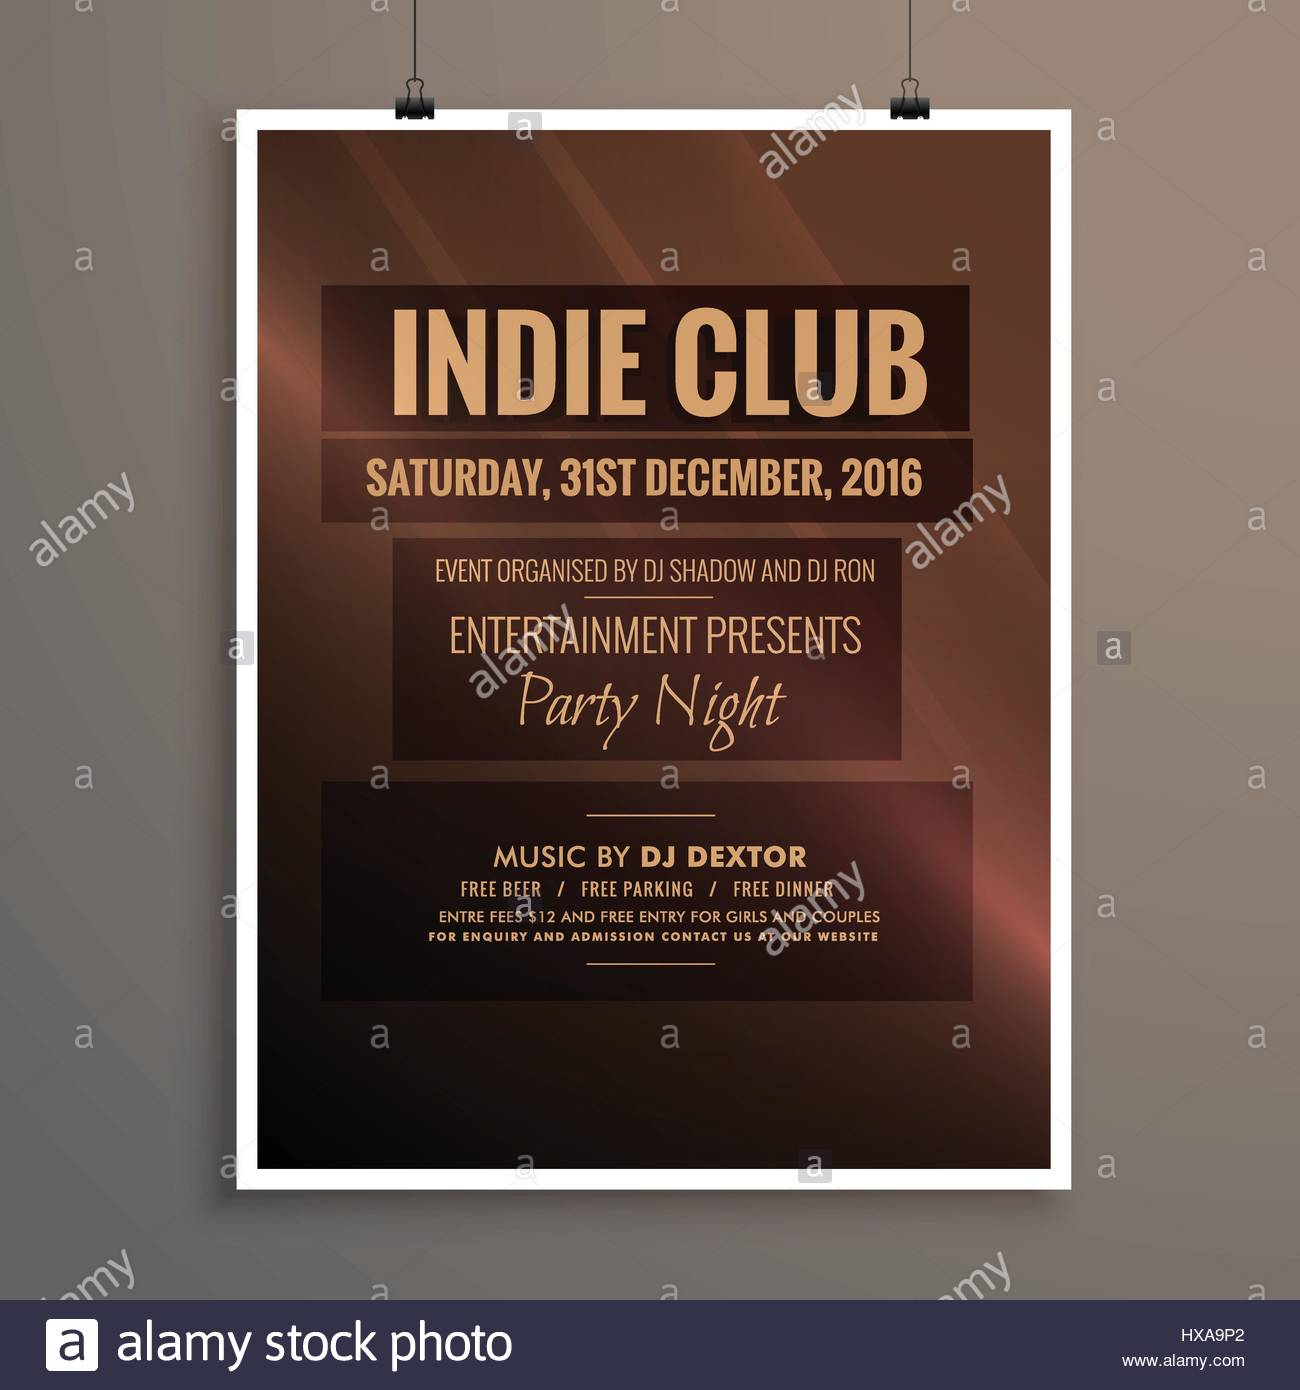 indie club dj party night flyer banner template Stock Vector Art ...